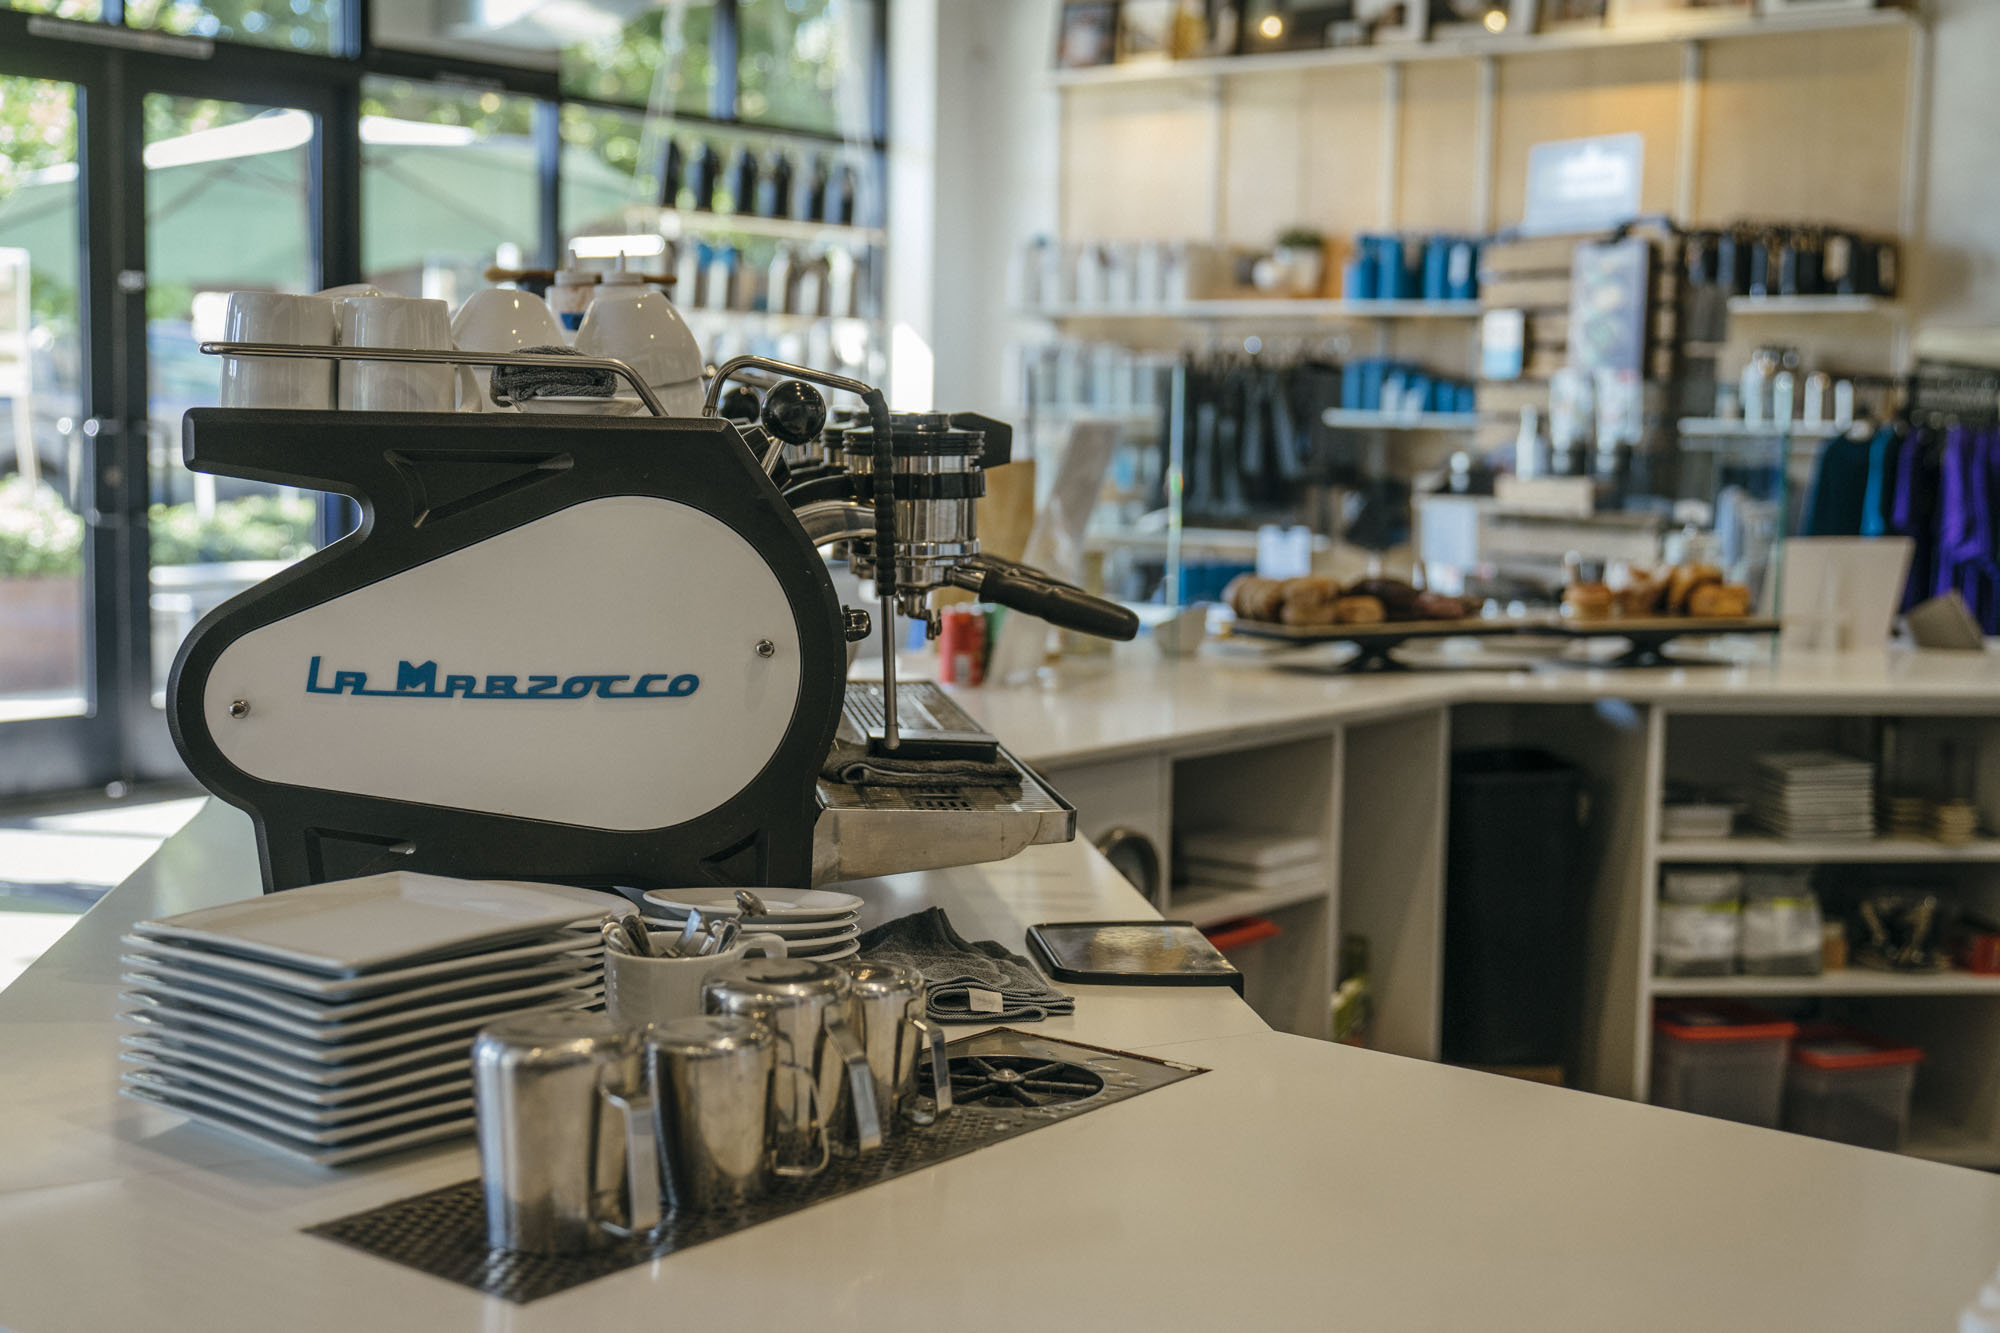 A La Marzocco machine at MiiR Flagship in Seattle.